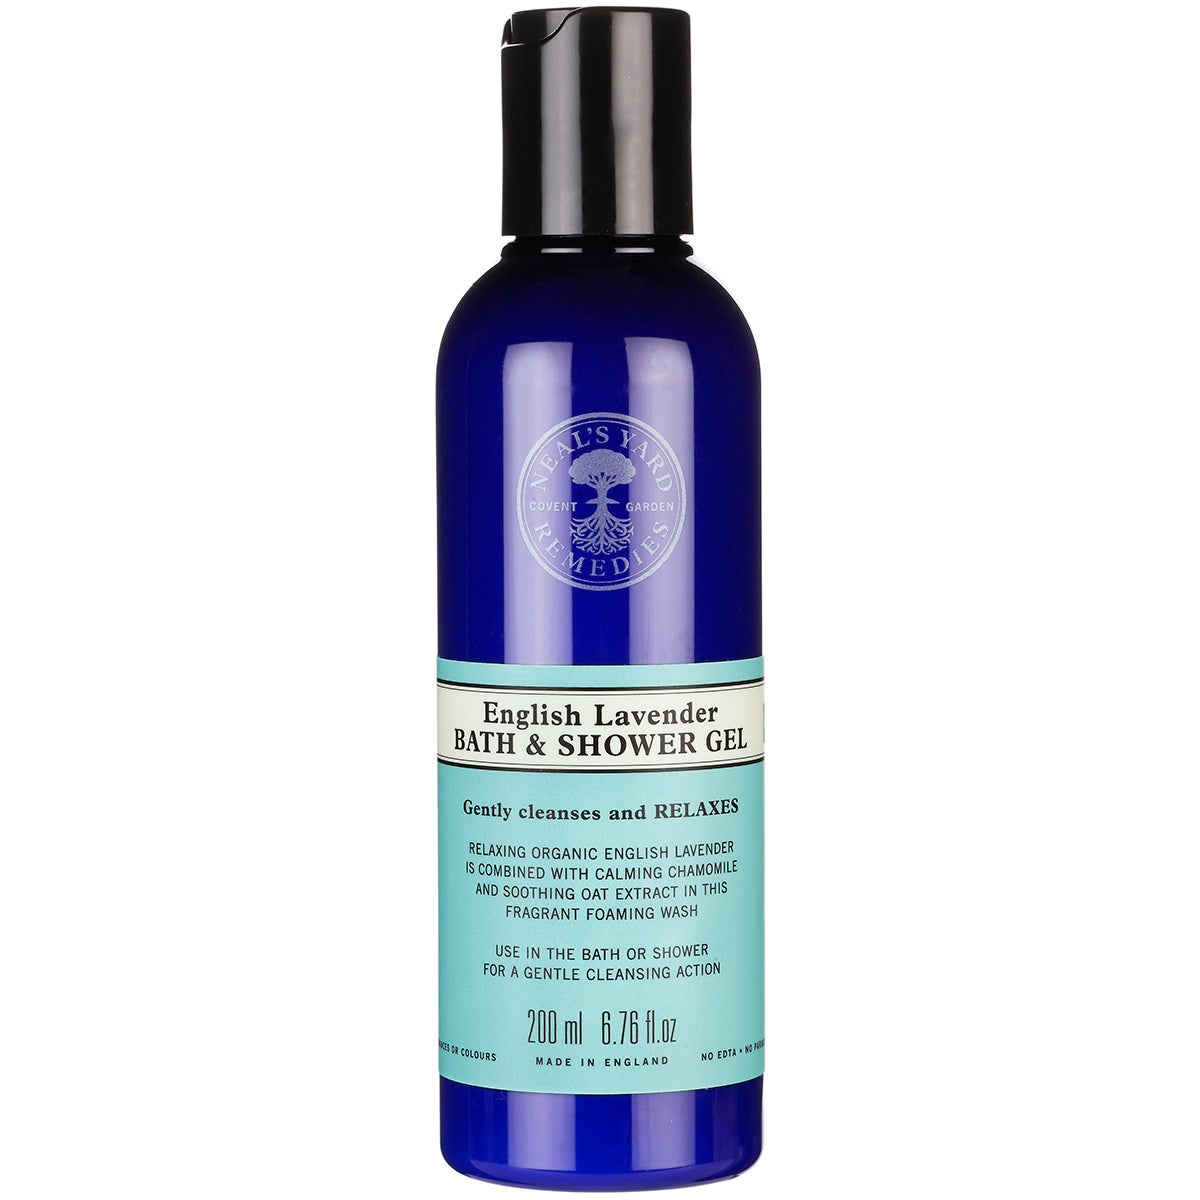 Neal's Yard Remedies English Lavender Bath & Shower Gel